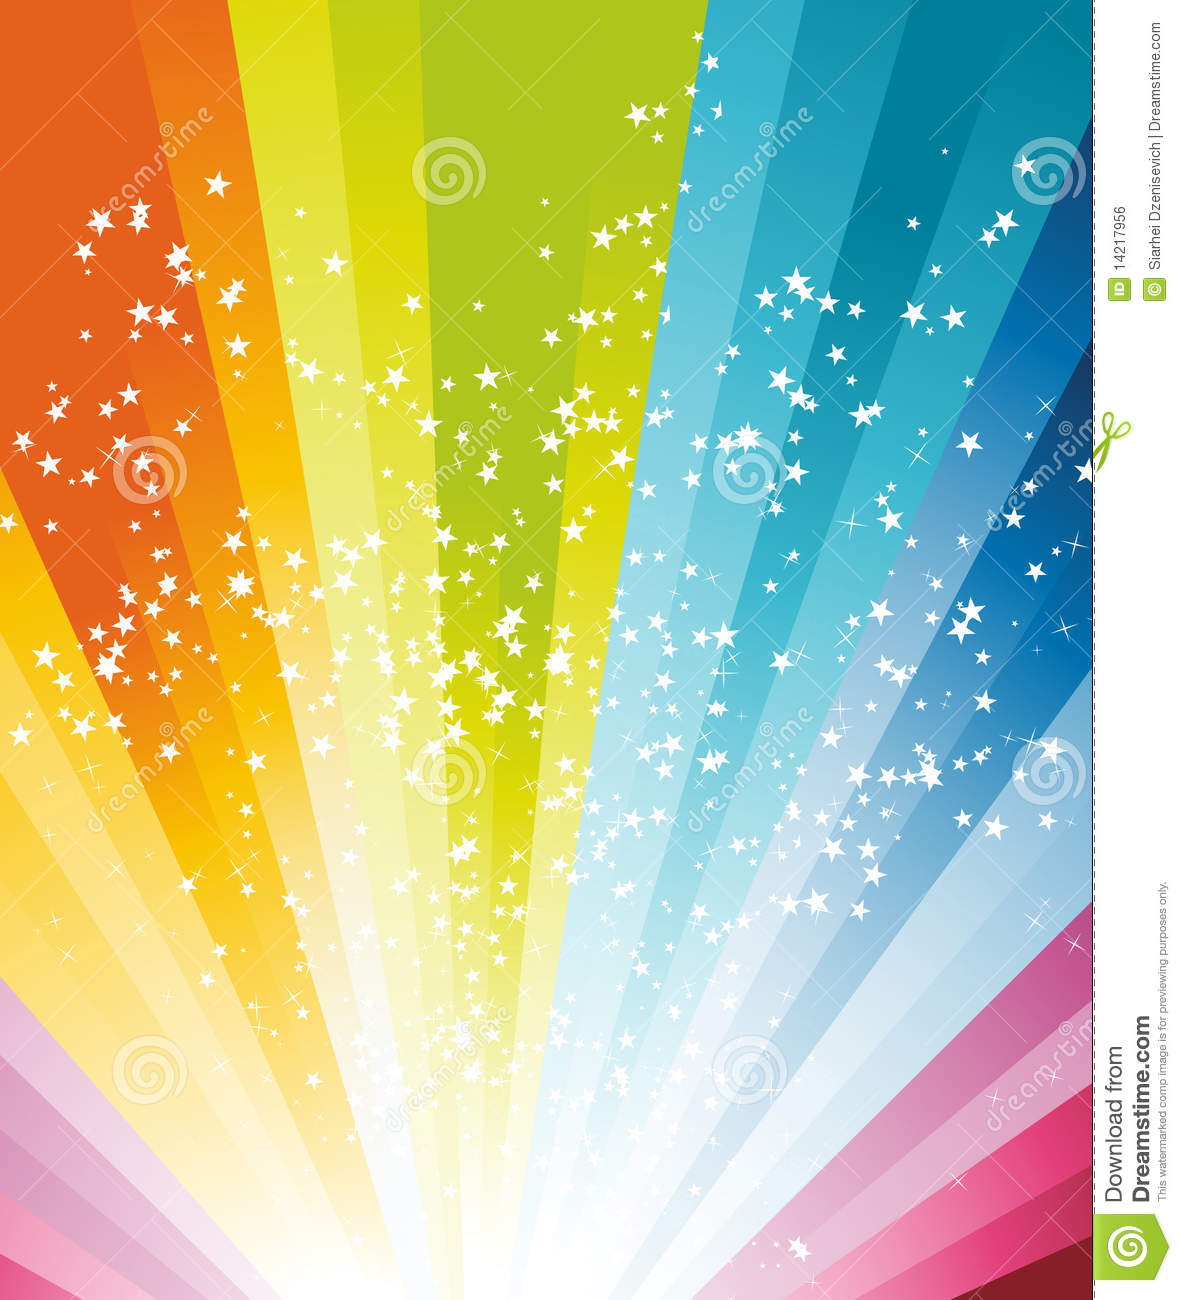 Stock photos mallet of judge image 10990093 - Abstract Rainbow Birthday Banner Royalty Free Stock Image Image Stock Photos Mallet Of Judge Image 10990093